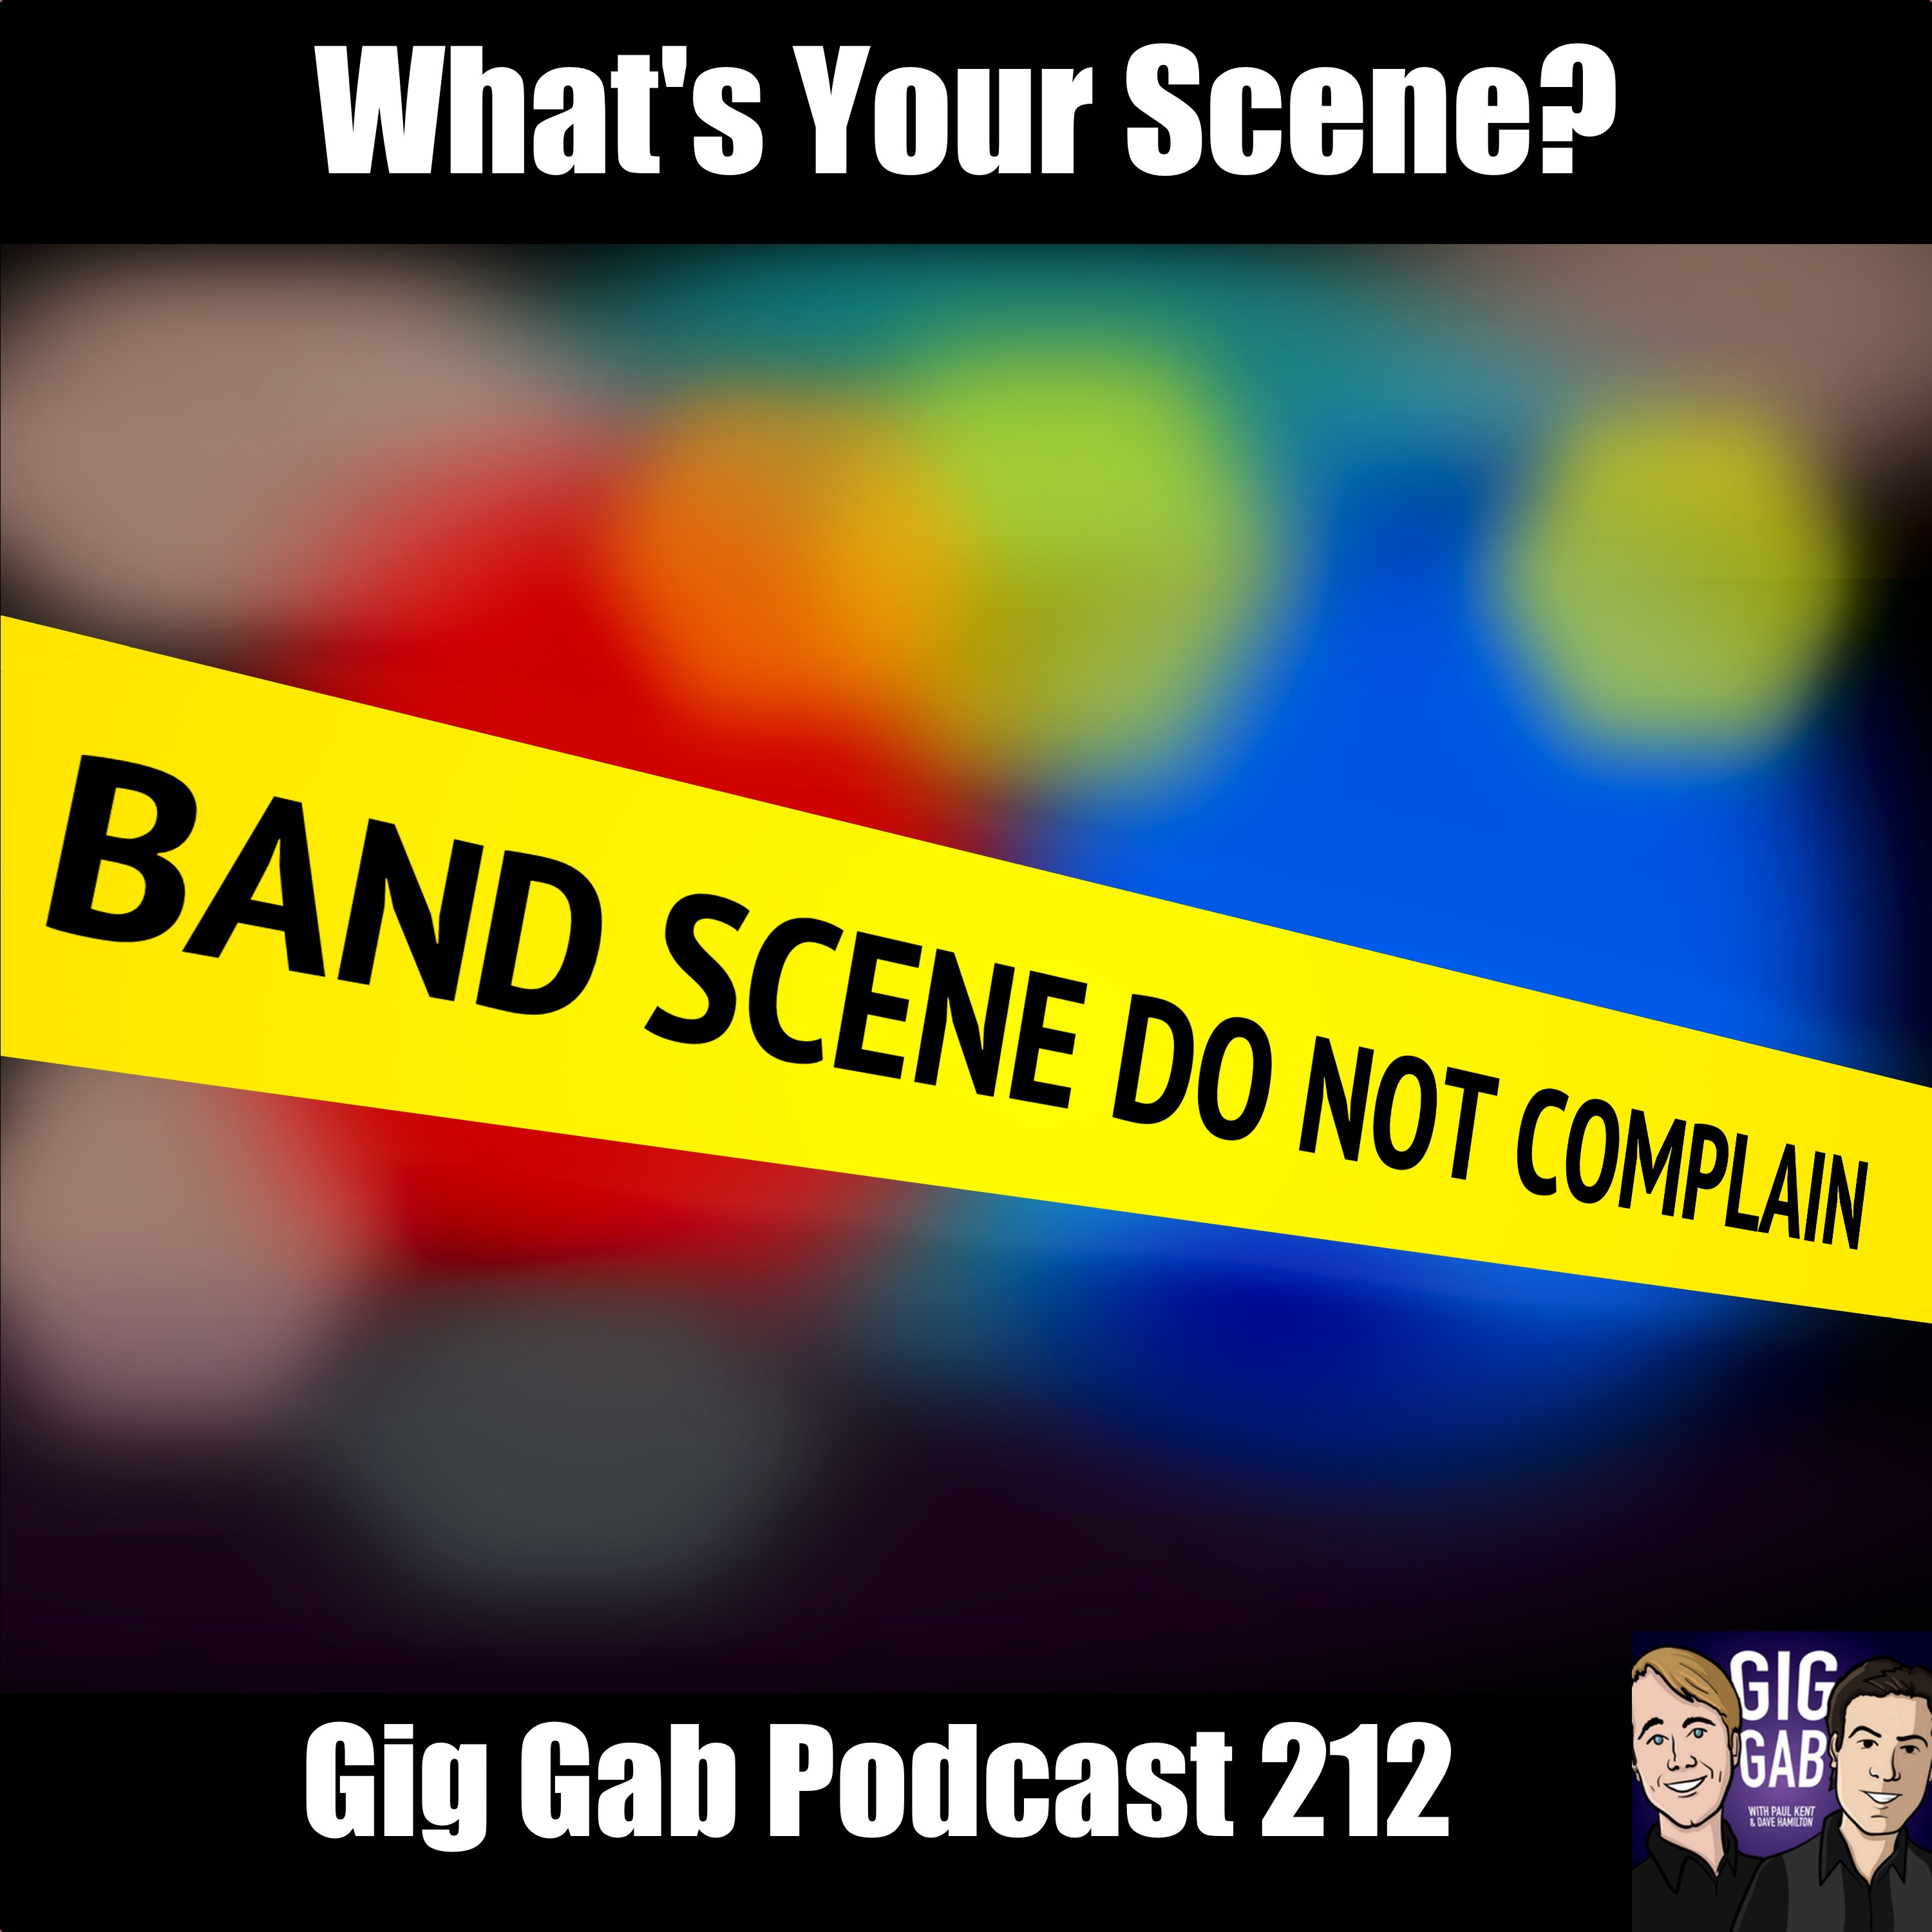 Gig Gab - The Working Musicians' Podcast | Podbay